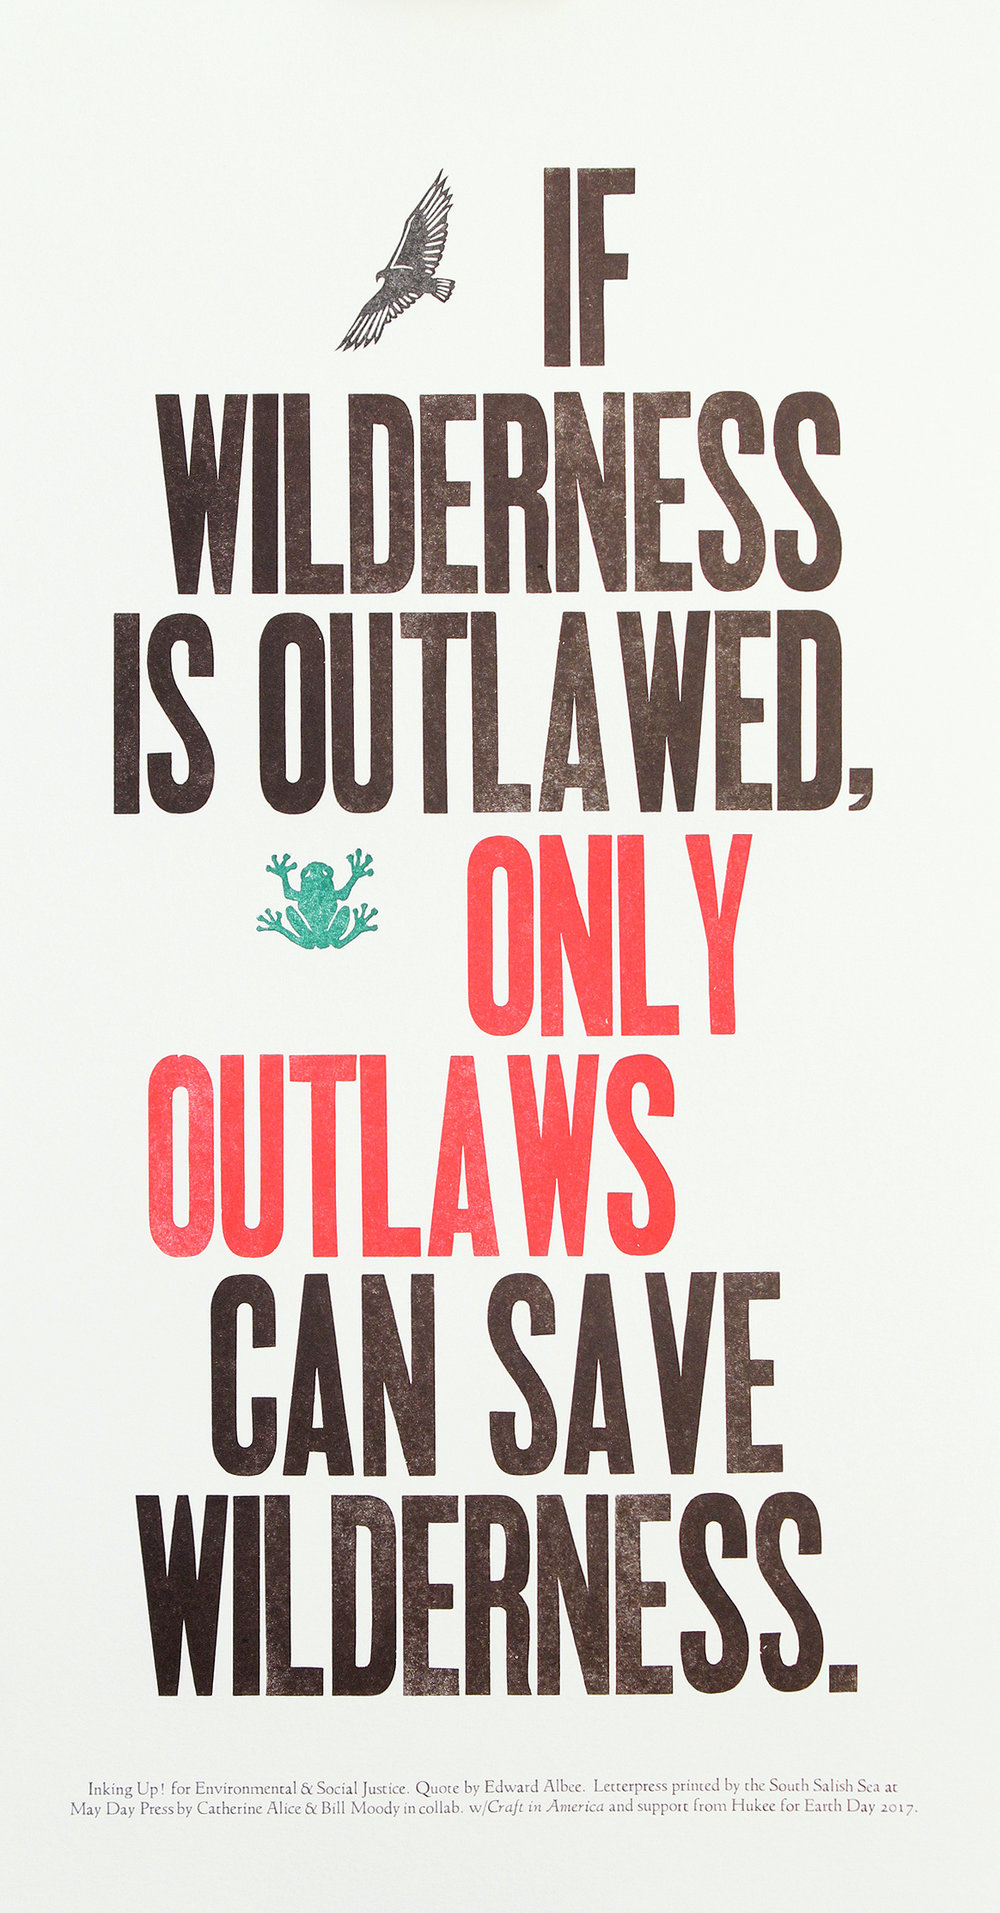 quote by Edward Abbey. This broadside will premier at Craft in America Center, L.A., for Earth Day!